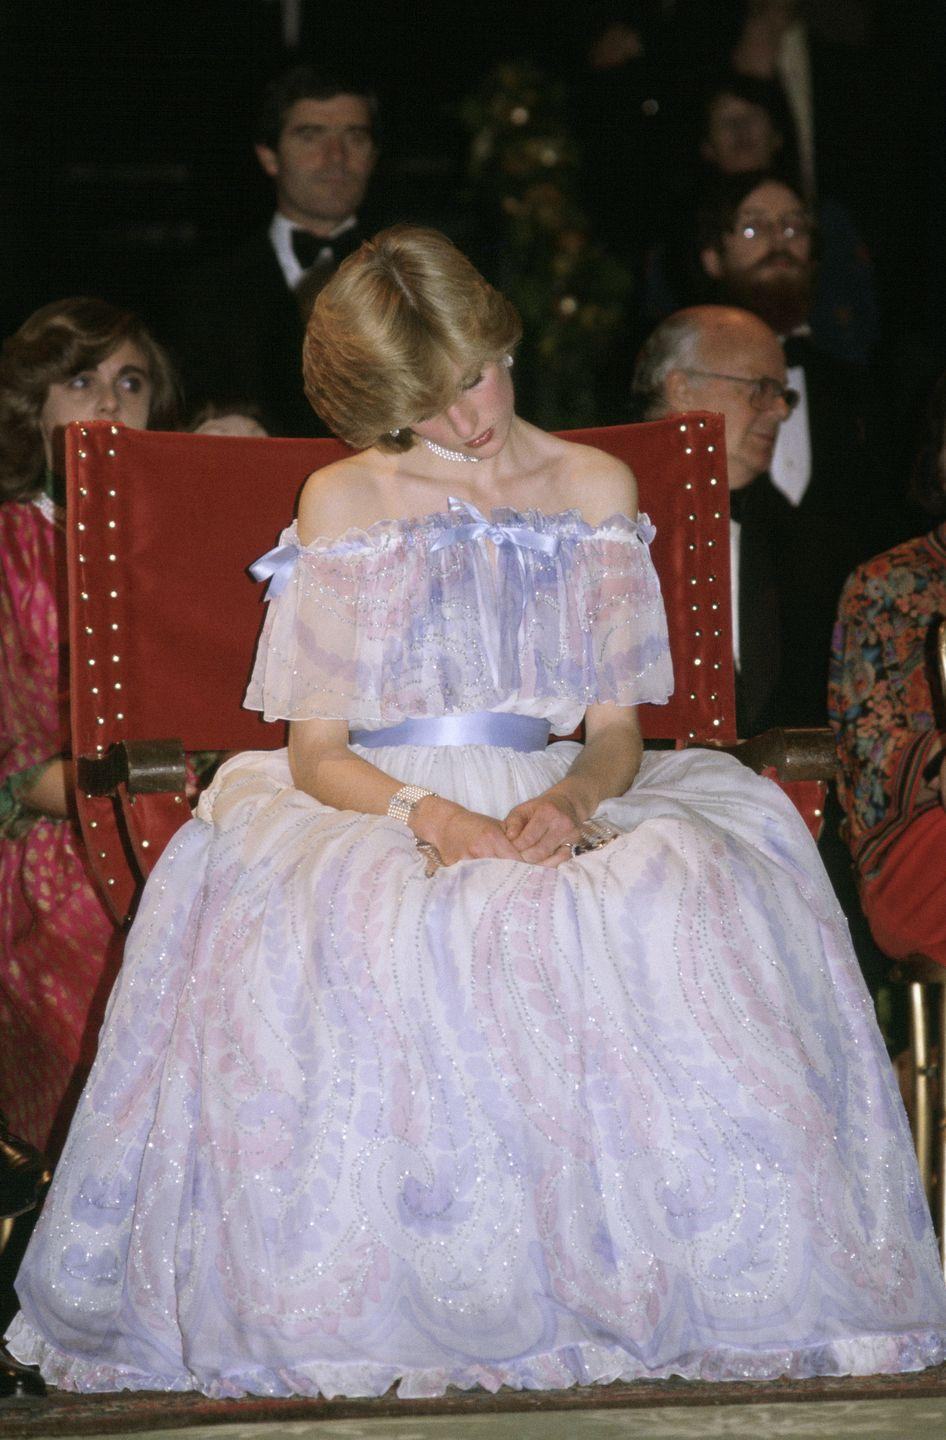 <p>Princess Diana gets famously sleepy at a gala at the Victoria and Albert Museum. The next day, the palace announced Diana was pregnant with Prince William. </p>